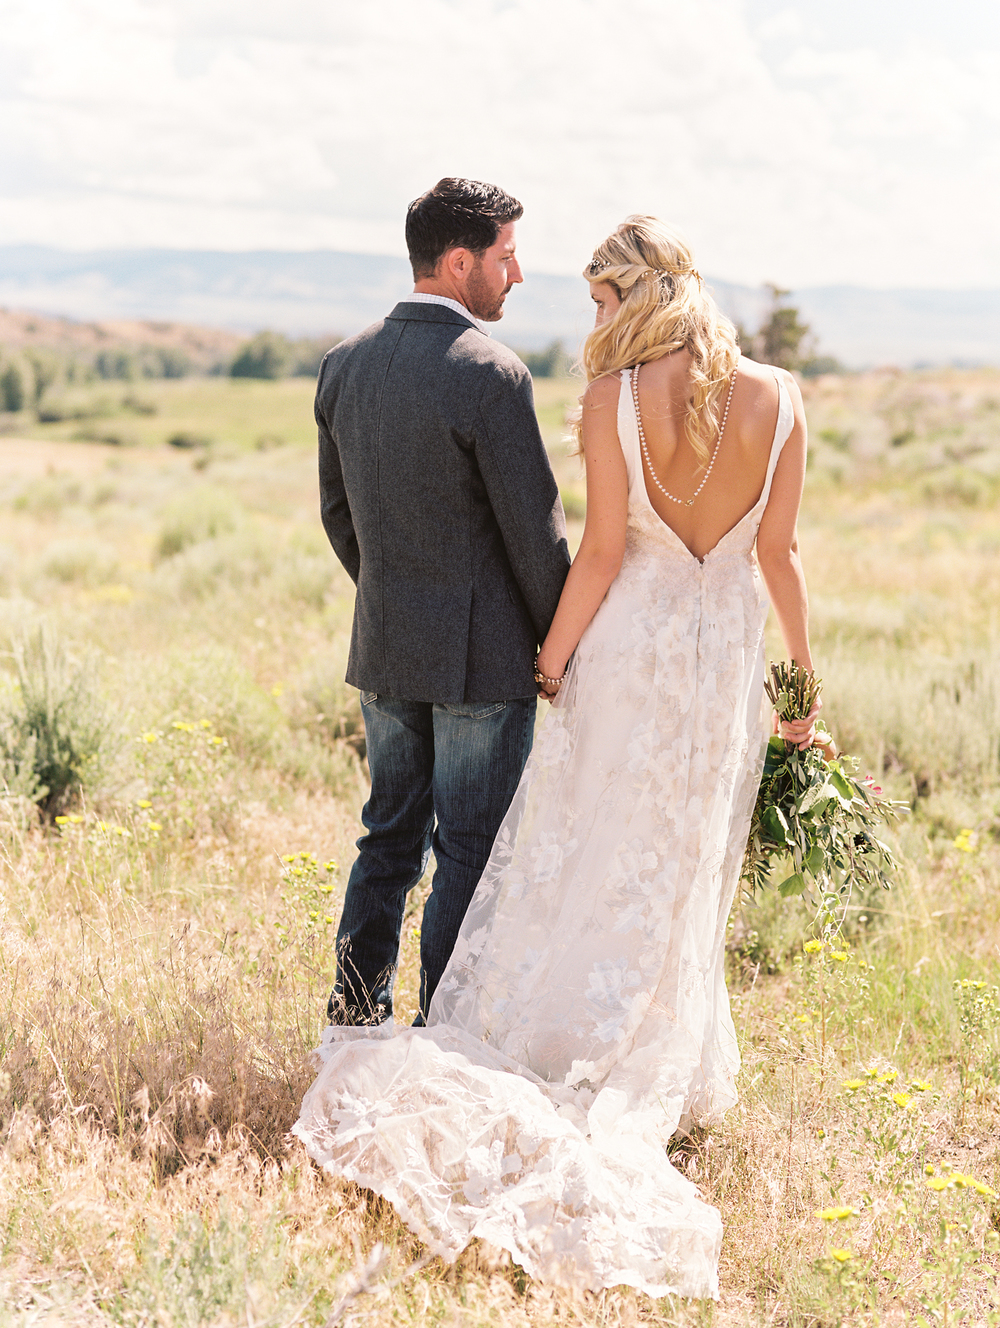 Bohemian Wedding Inspiration at Brush Creek Ranch | Claire Pettibone Raven gown from Little White Dress Bridal Shop | Photography: Lisa O'Dwyer